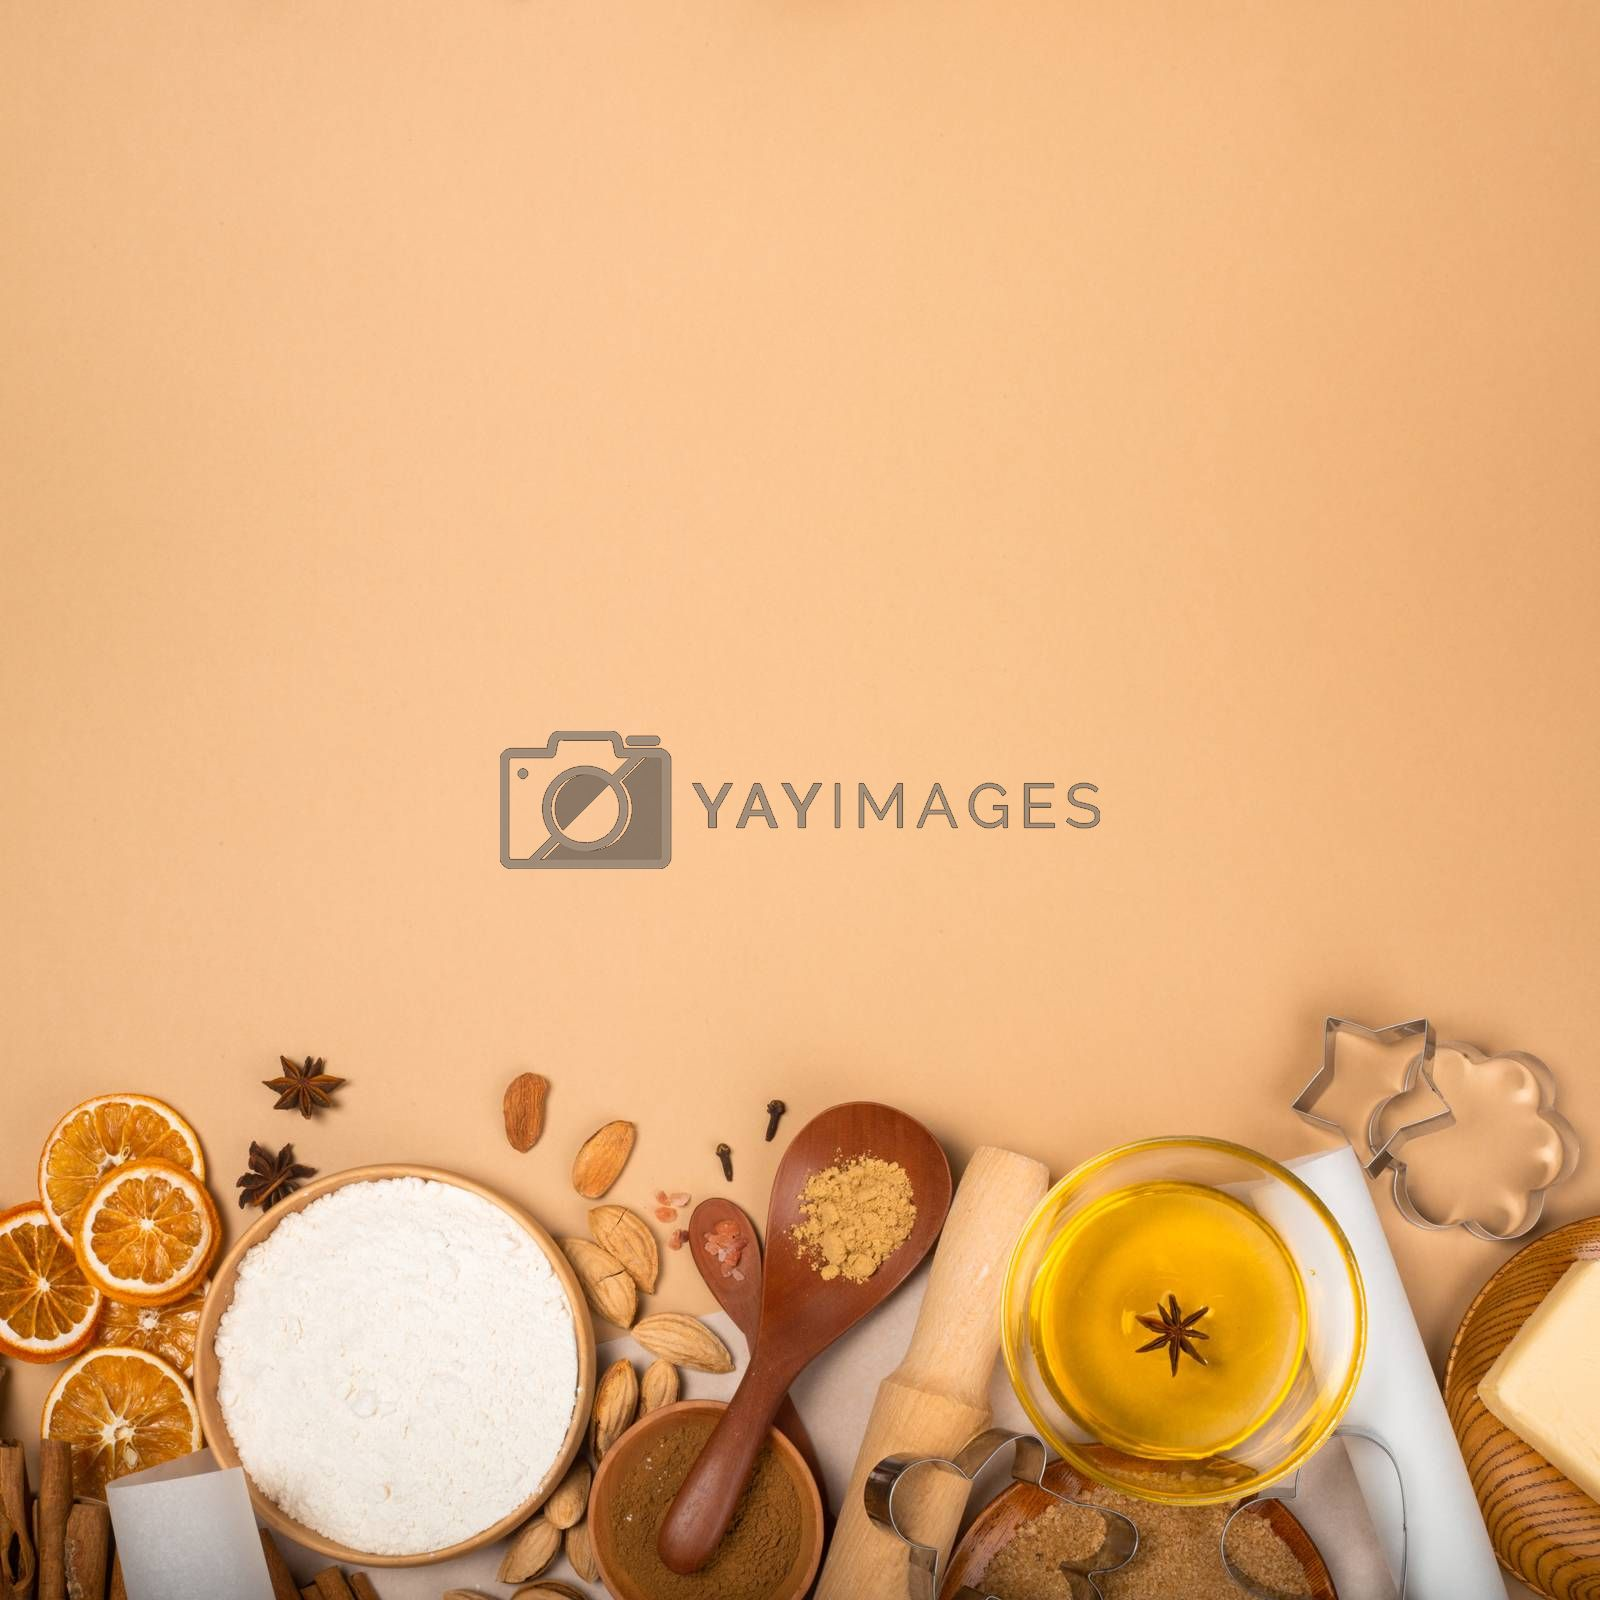 Christmas gingerbread cookies cooking background flat lay top view template with copy space for text. Baking utensils, spices and food ingredients on brown paper background